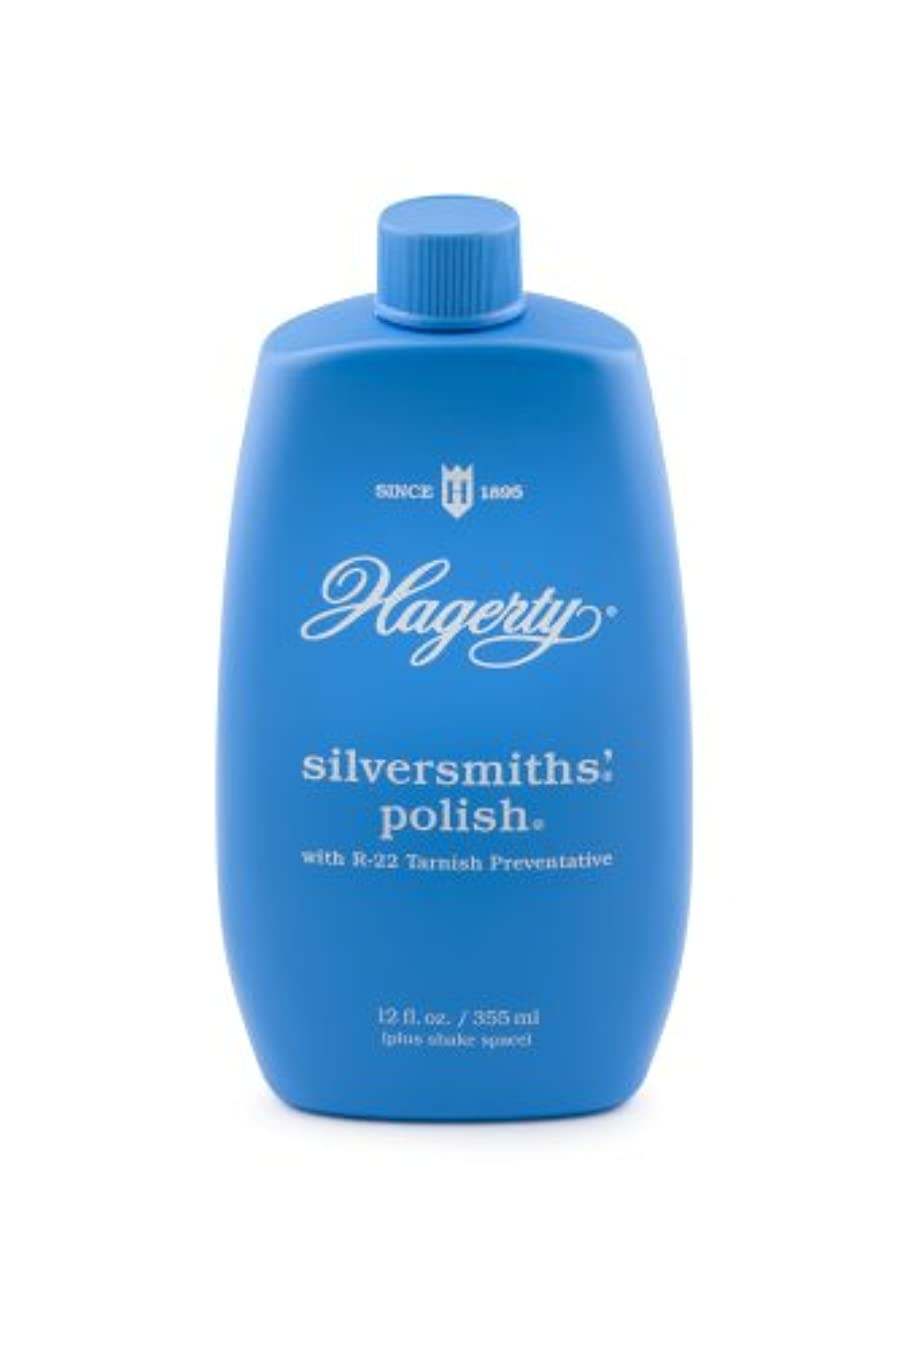 W. J. Hagerty Hagerty 10120 Silversmiths' Silver Polish, 12 Ounces, 12-Ounce, Blue, Fl Oz